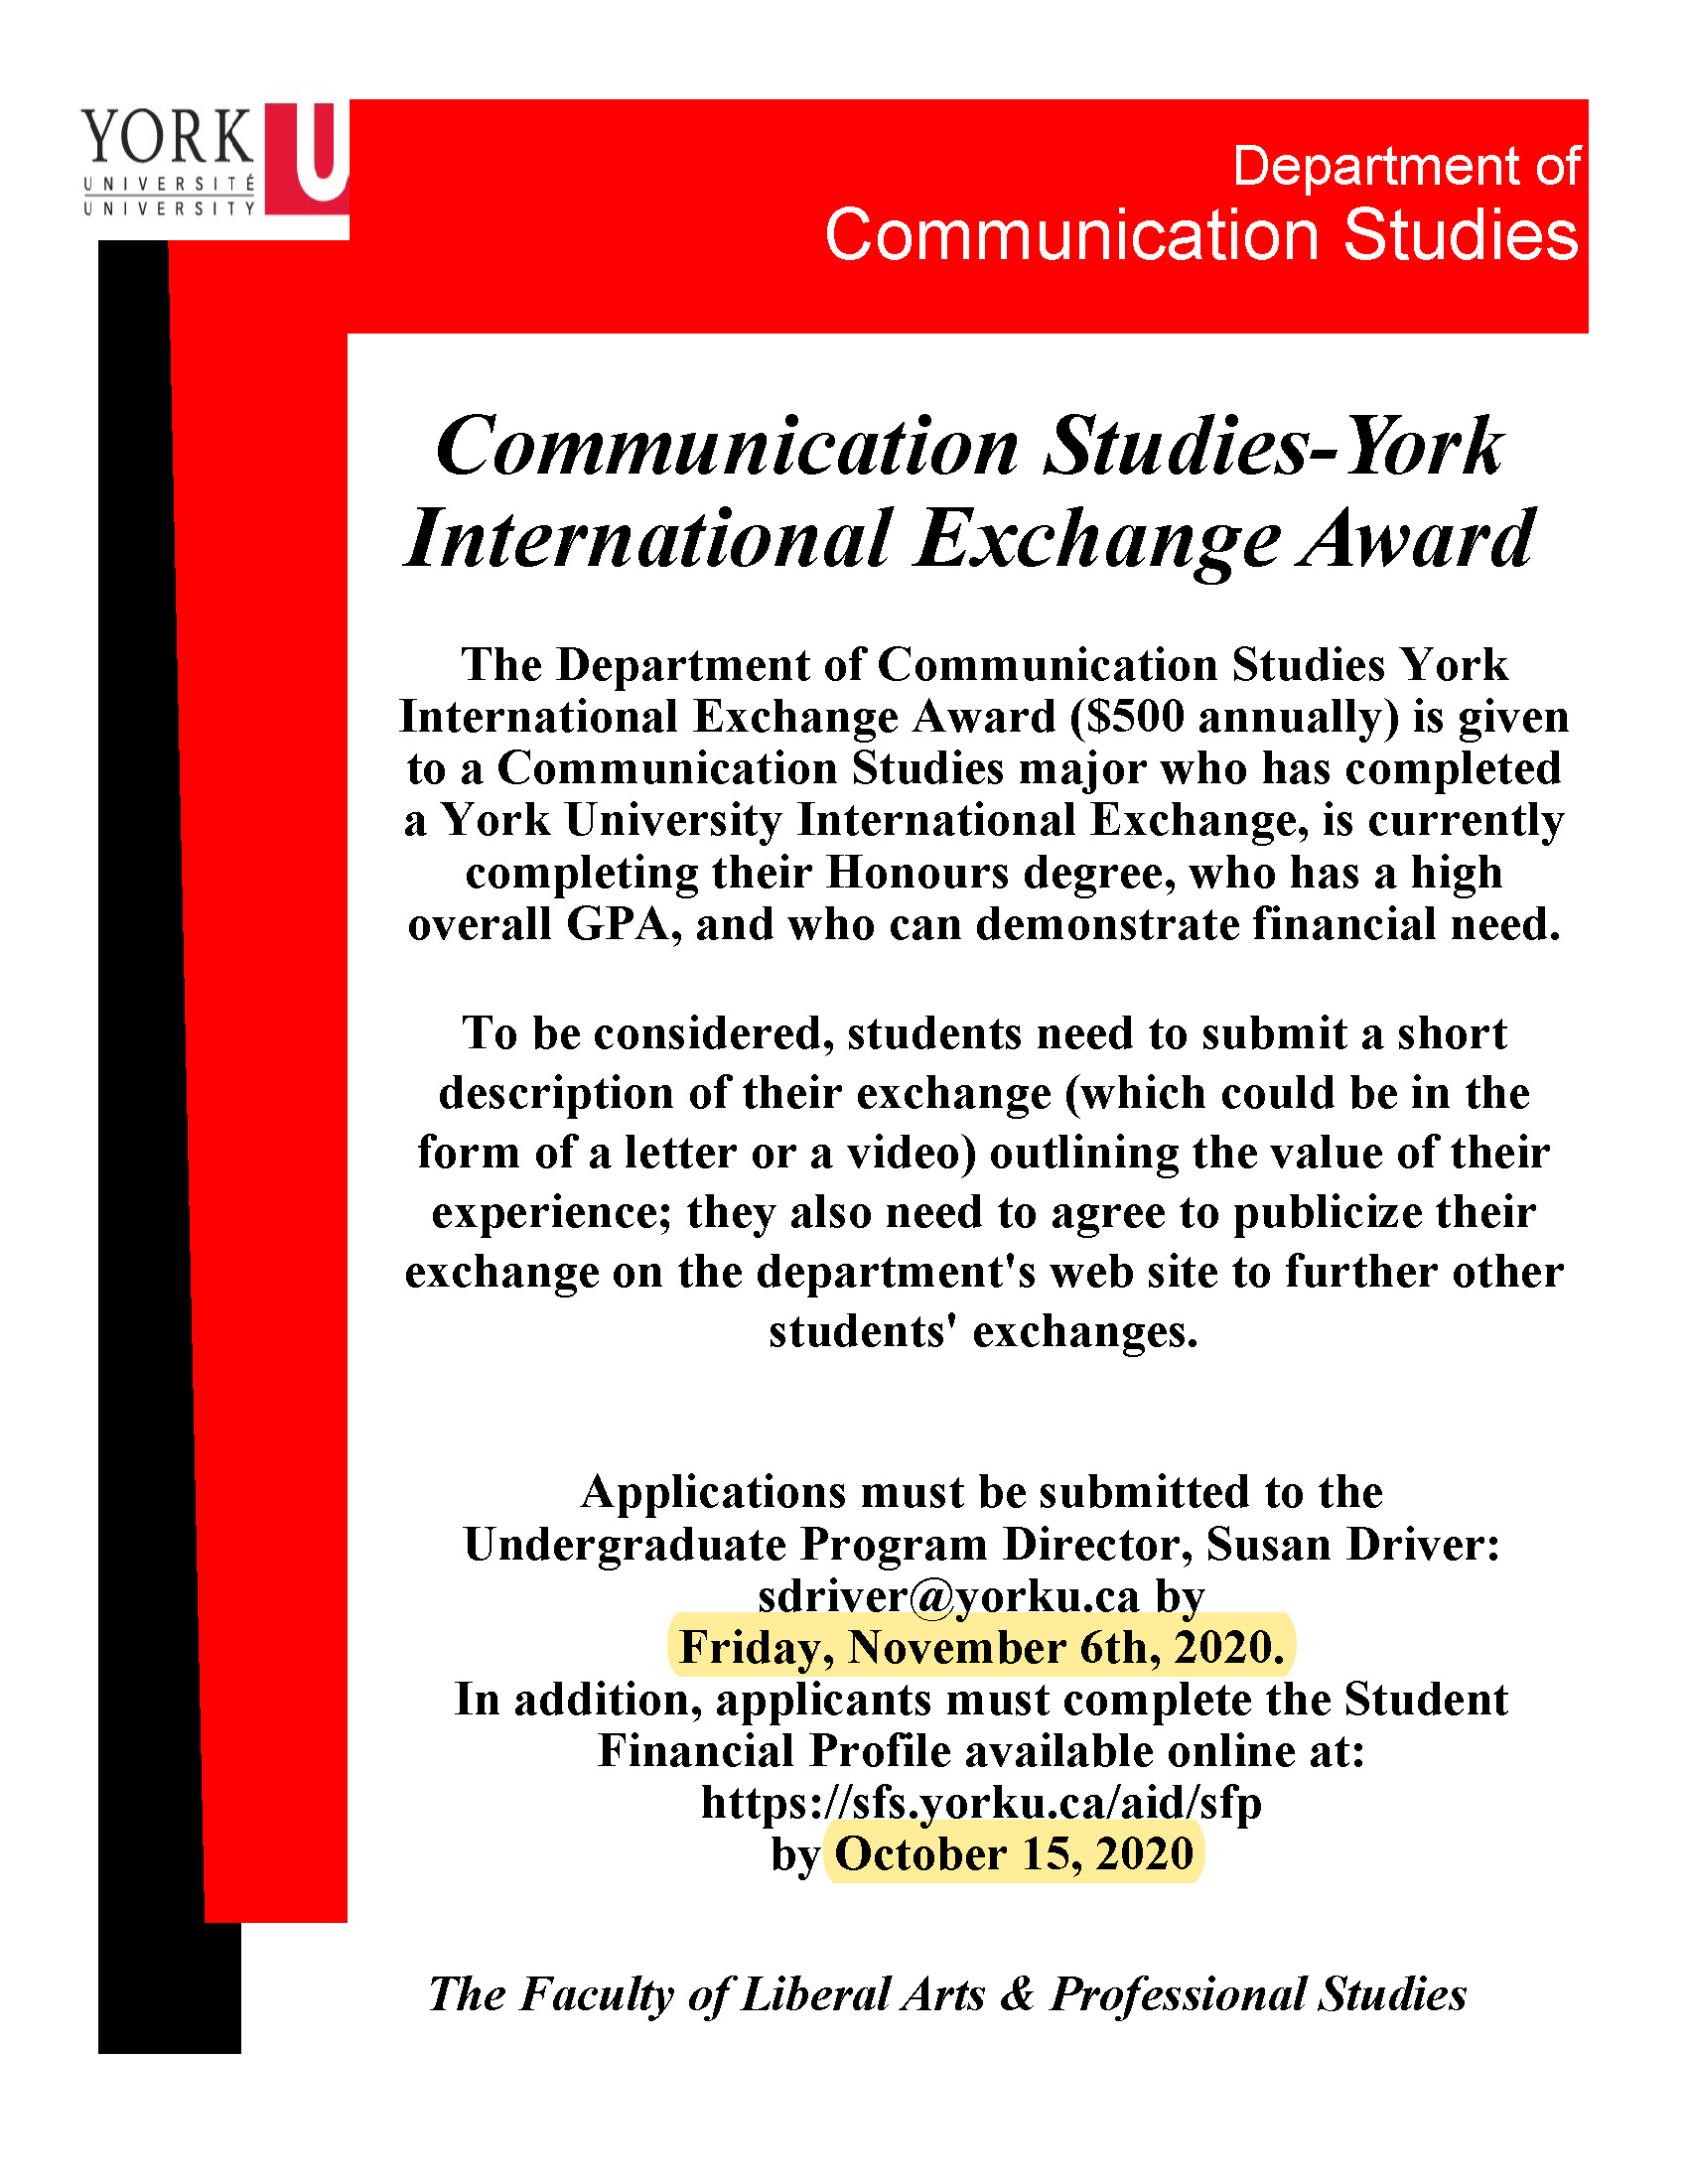 Communication Studies York International Exchange Award